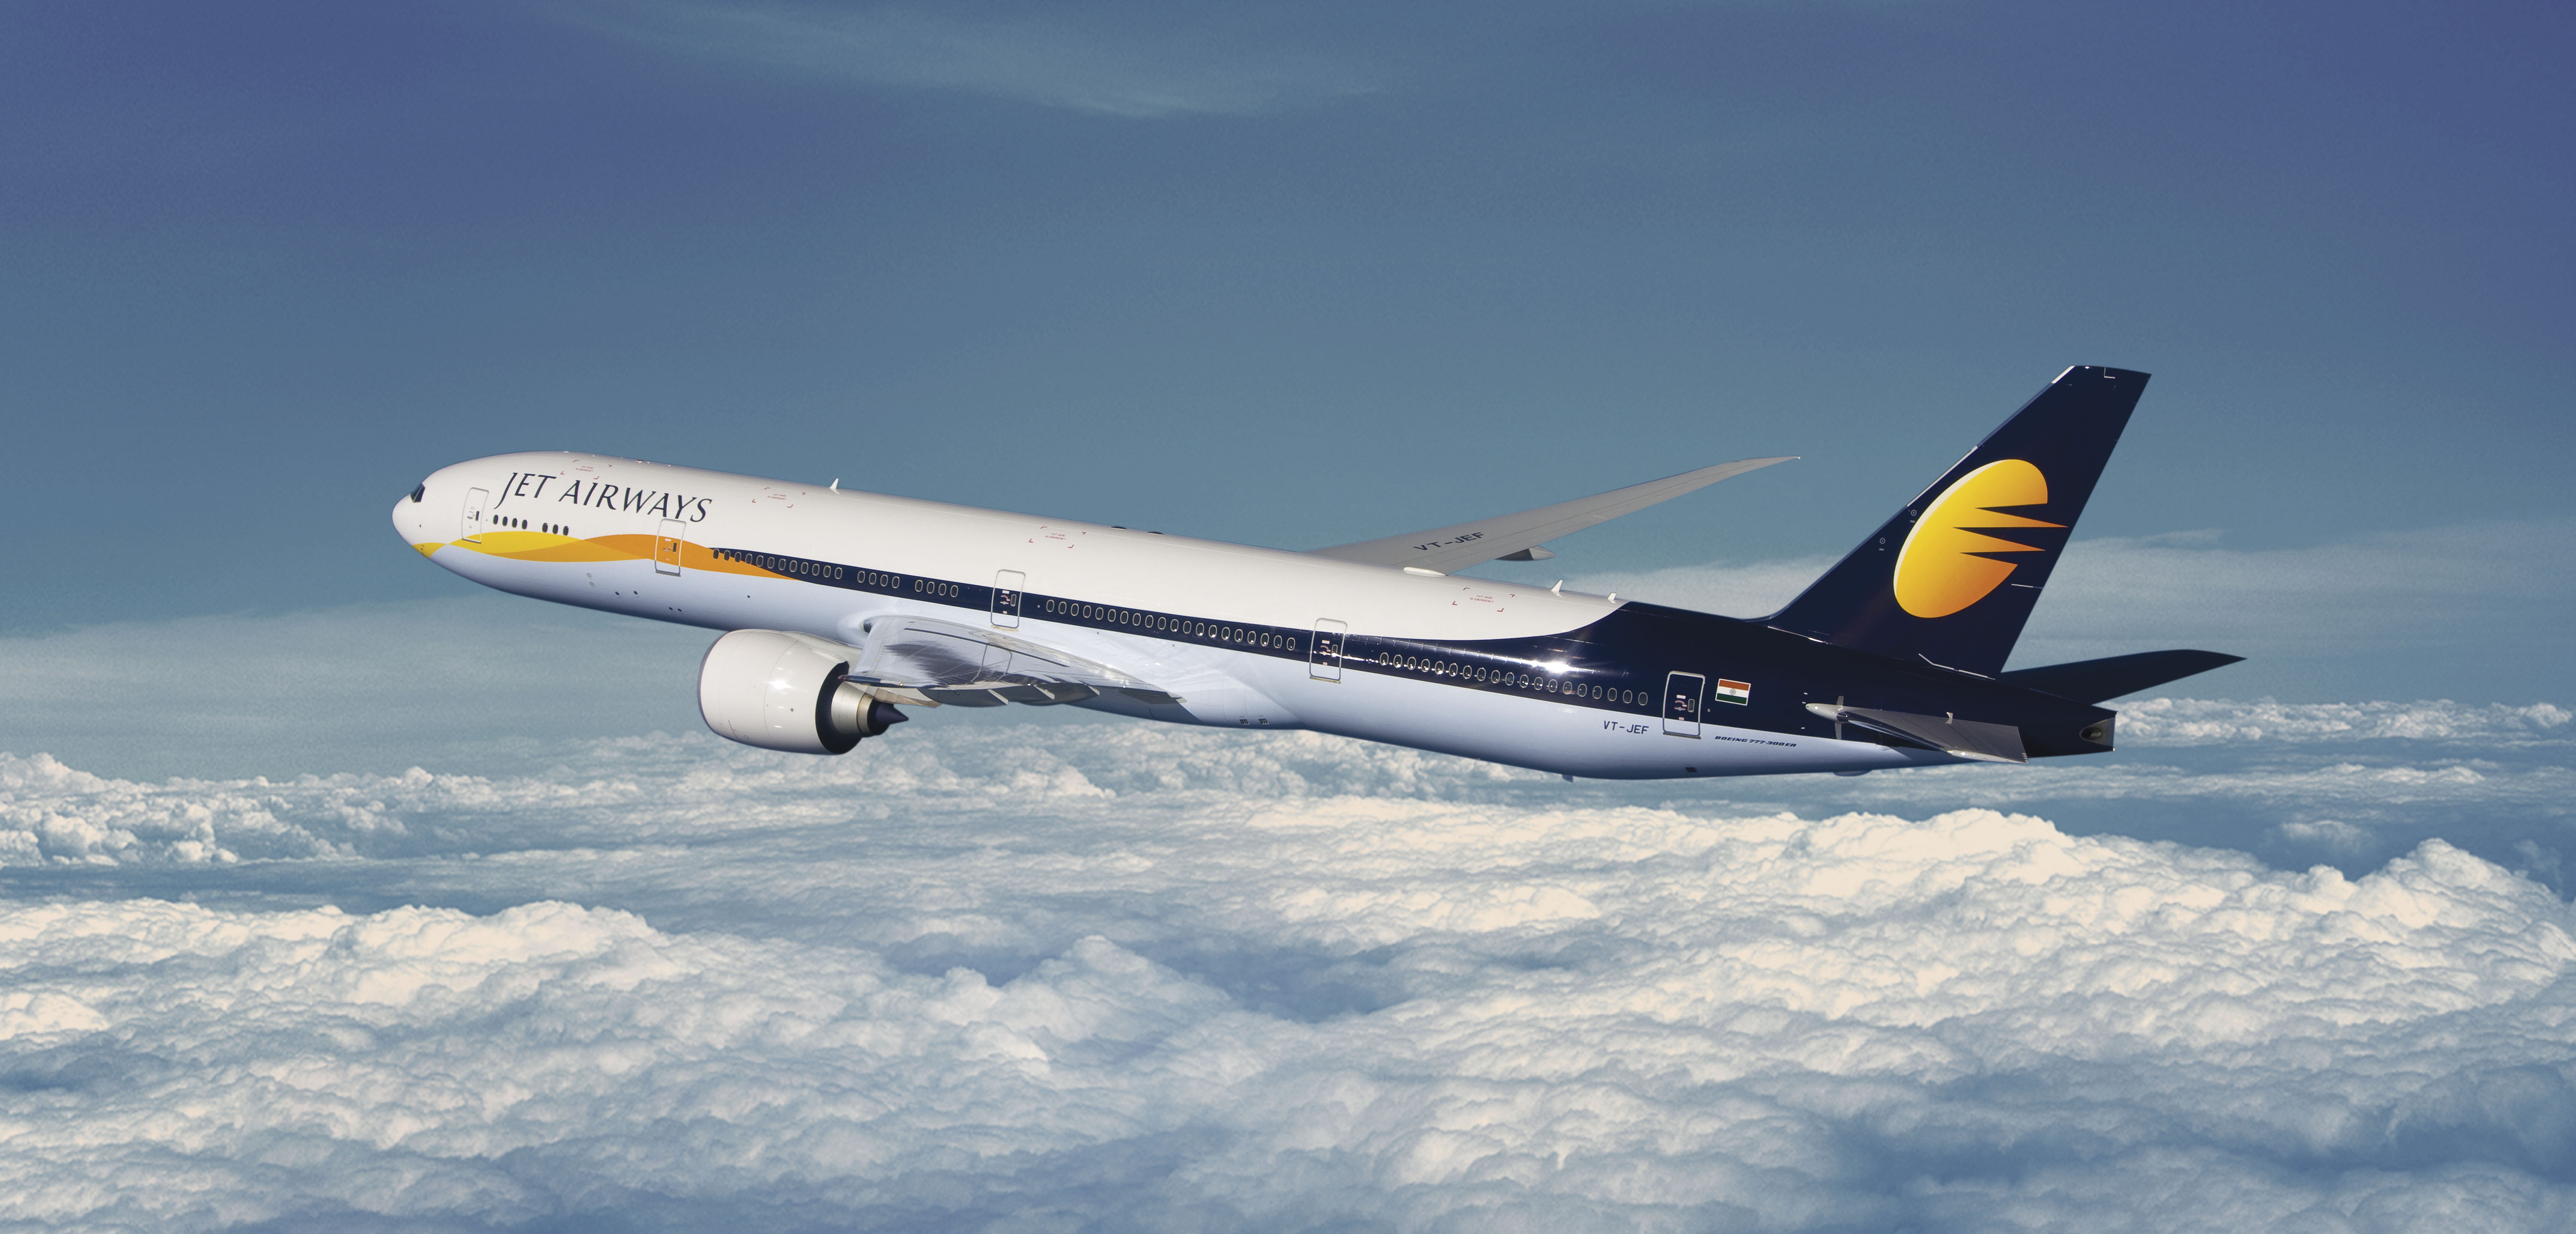 Jet Airways' Board has approved a Bank-Led Provisional Resolution Plan (BLPRP) which proposes restructuring under the provisions of the RBI Circular. Photo courtesy: Jet Airways